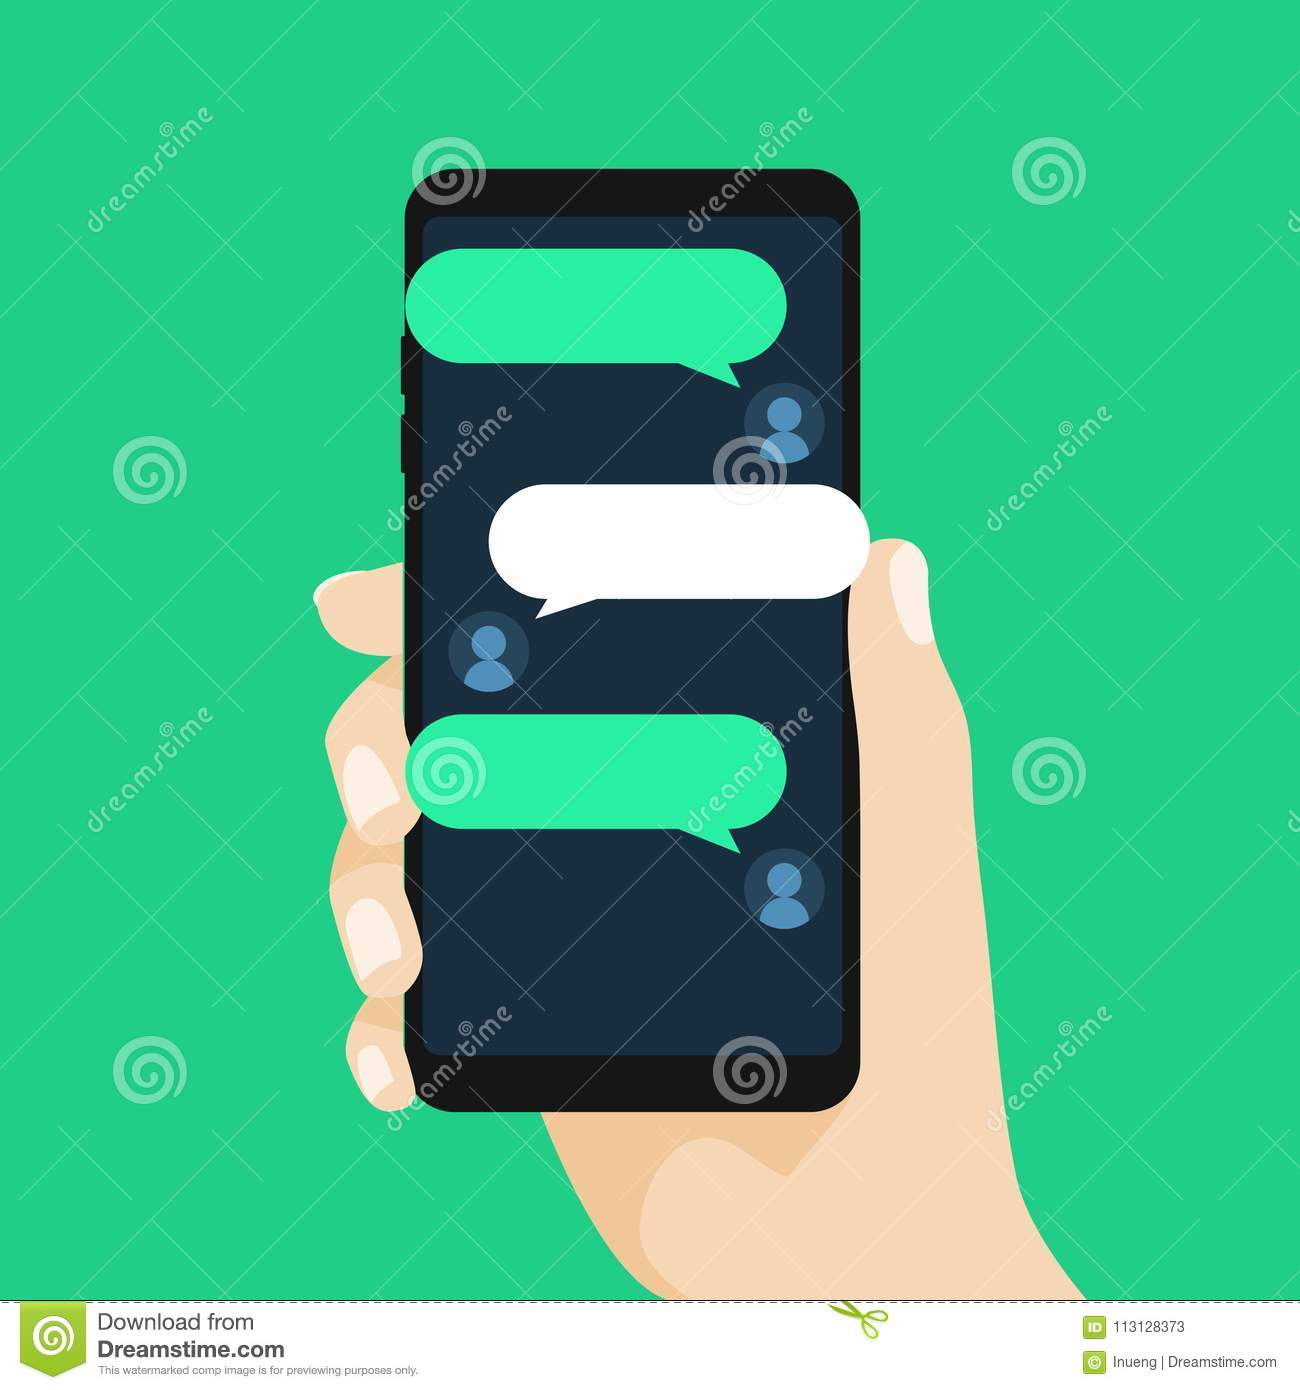 Concept of online conversation with texting message. Chatting on phone.